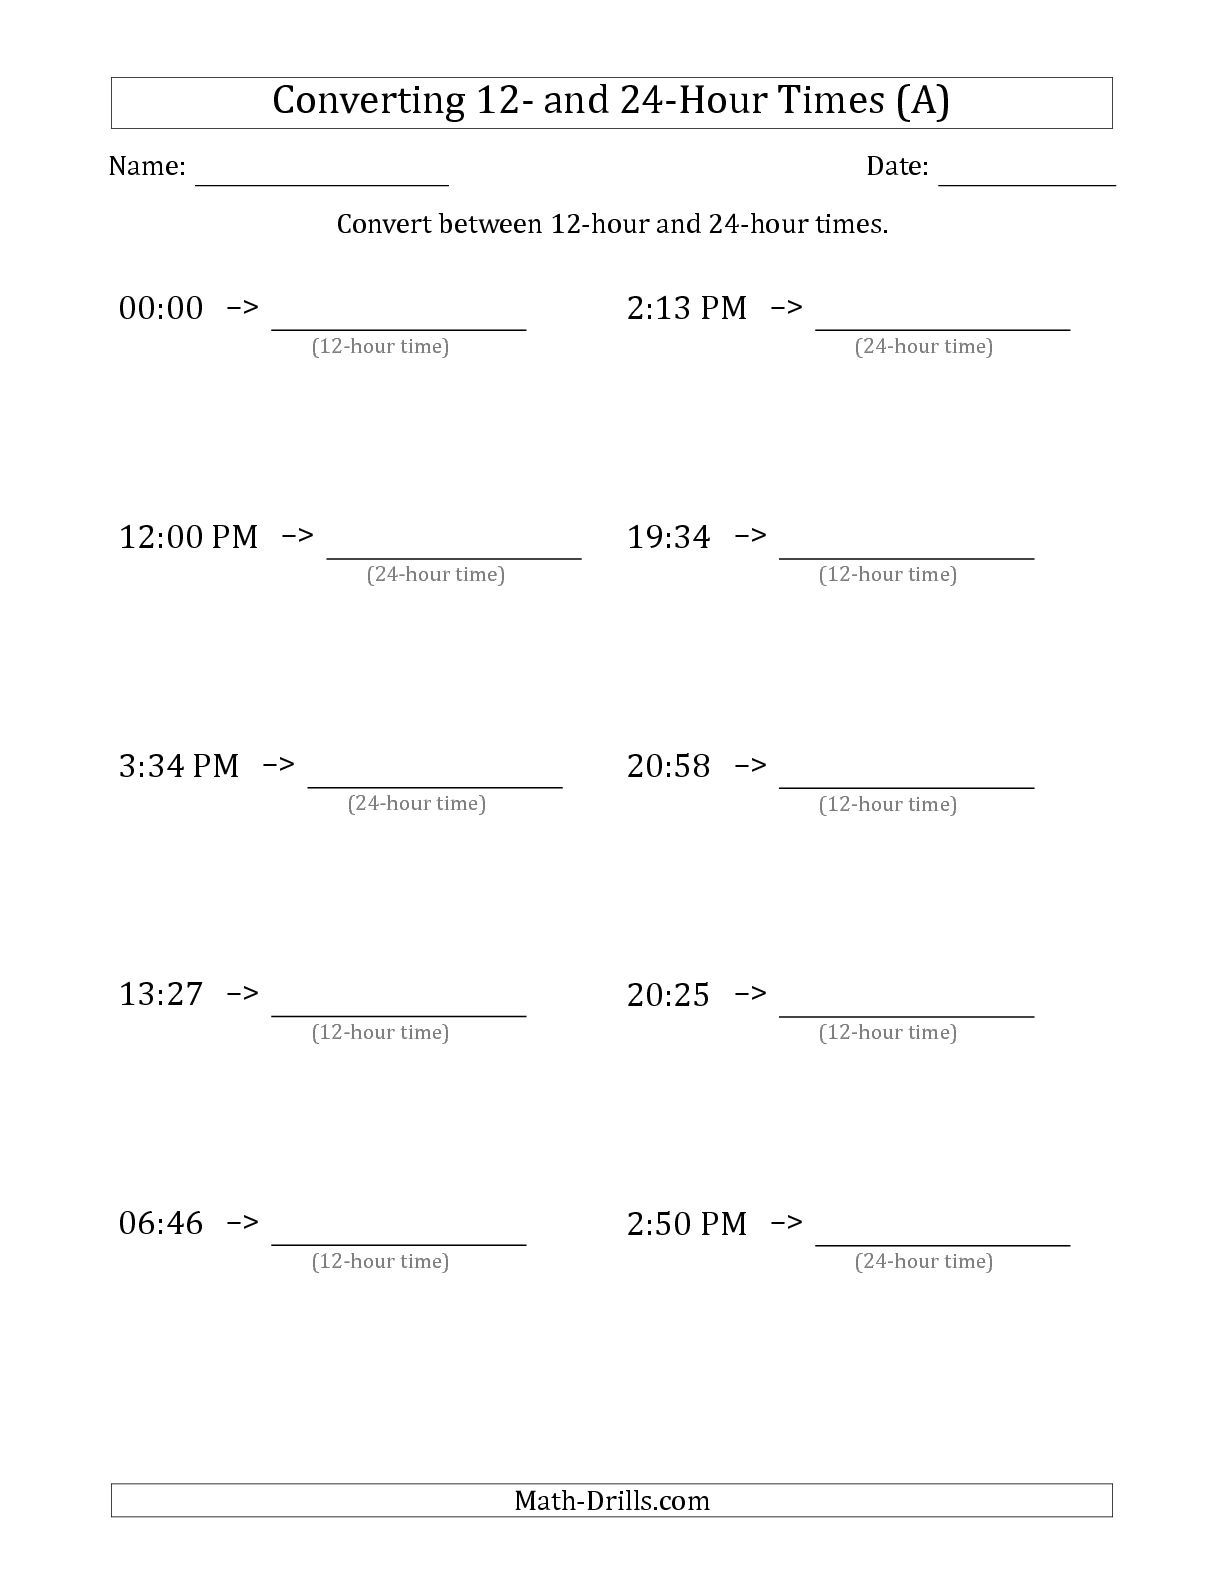 The Converting Between 12 Hour And 24 Hour Times A Time Worksheet